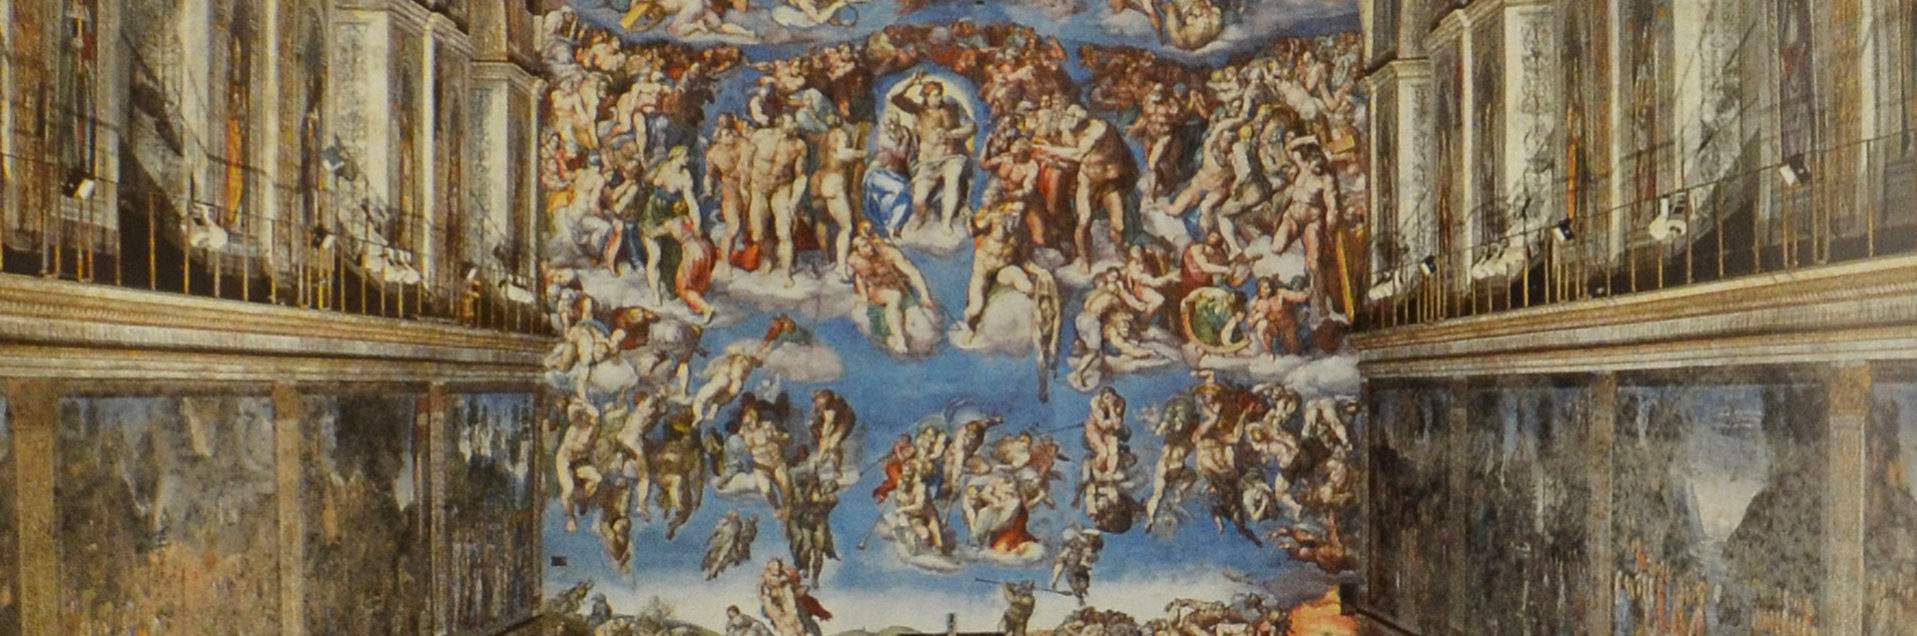 Why was the Sistine Chapel built?